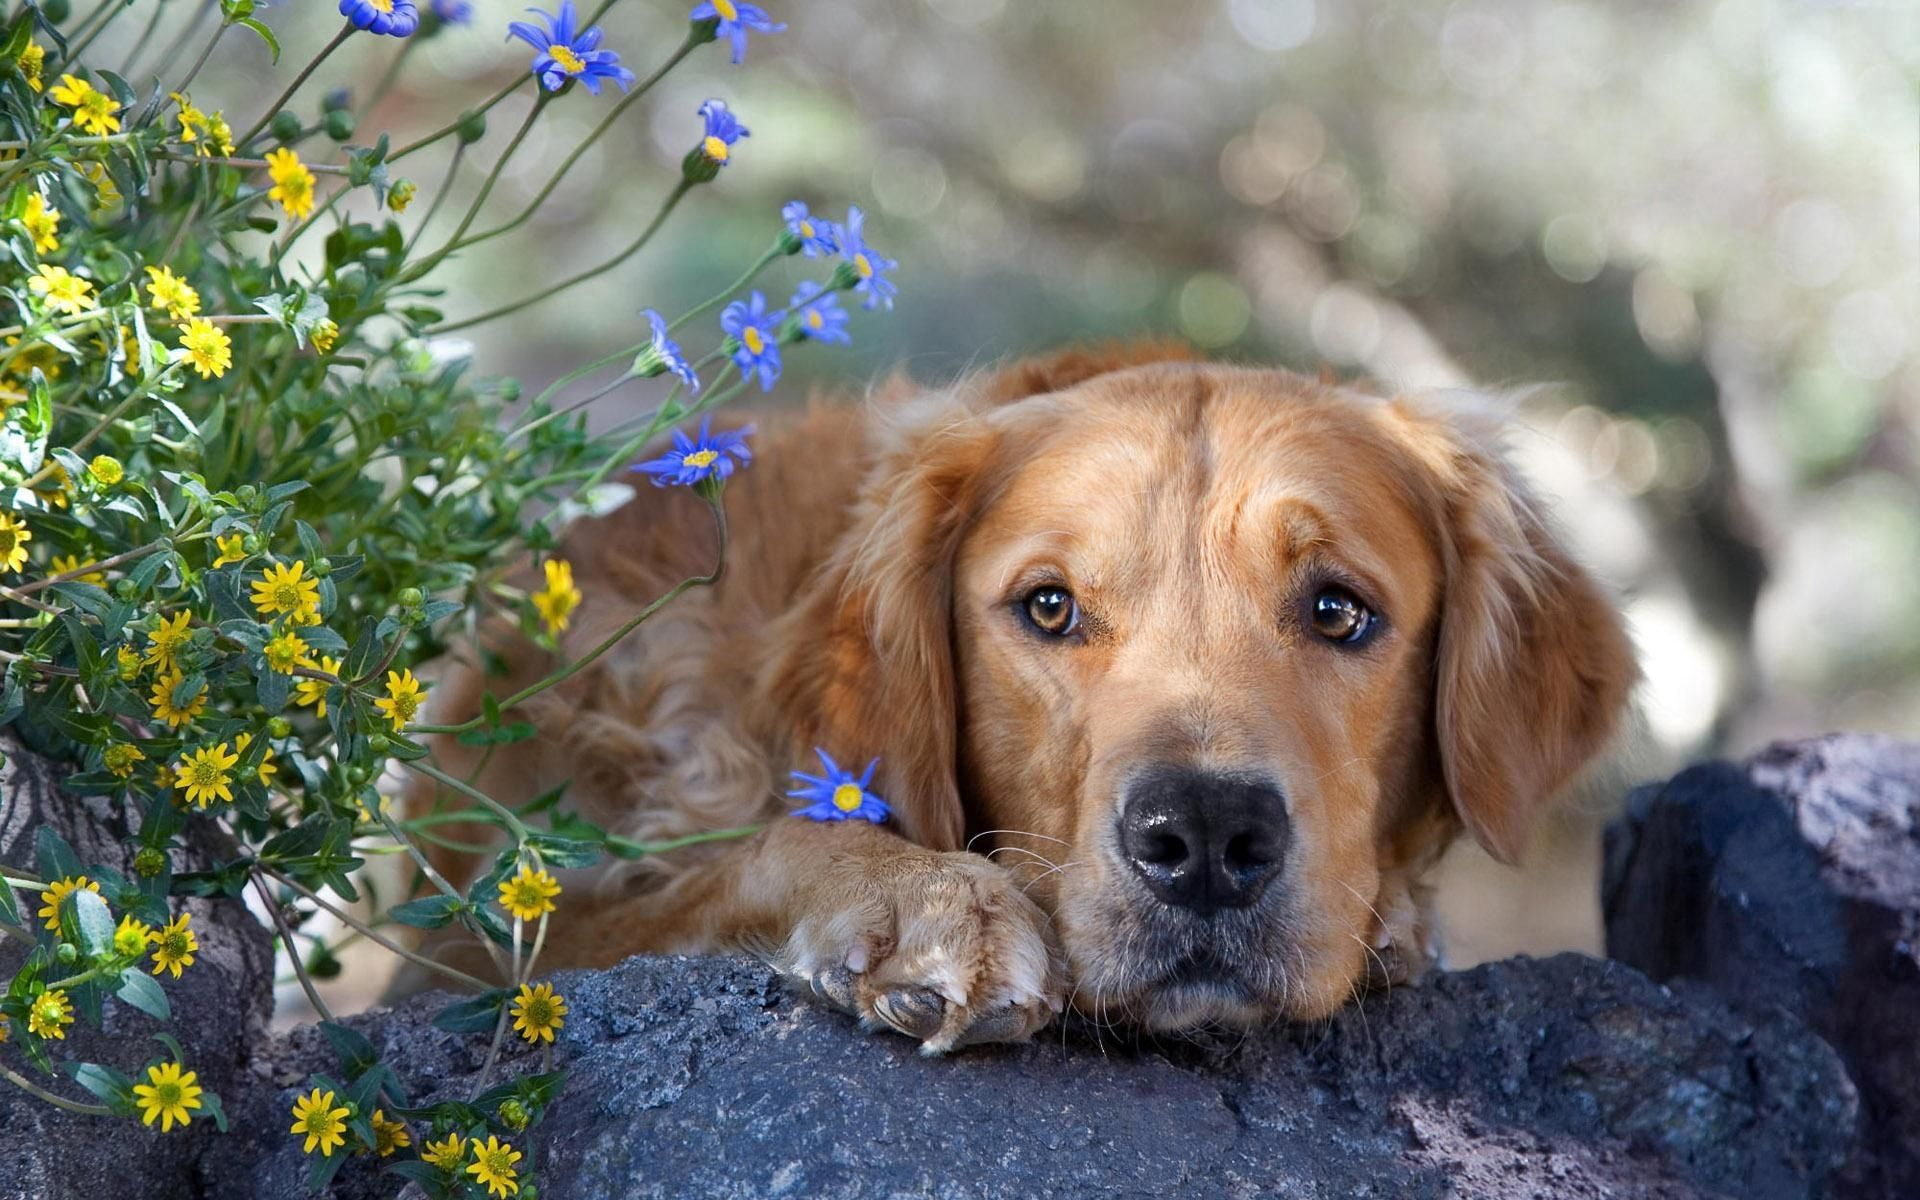 138930 download wallpaper Animals, Dog, Muzzle, Grass, Sadness, Sorrow, Rock, Stone, Flowers screensavers and pictures for free